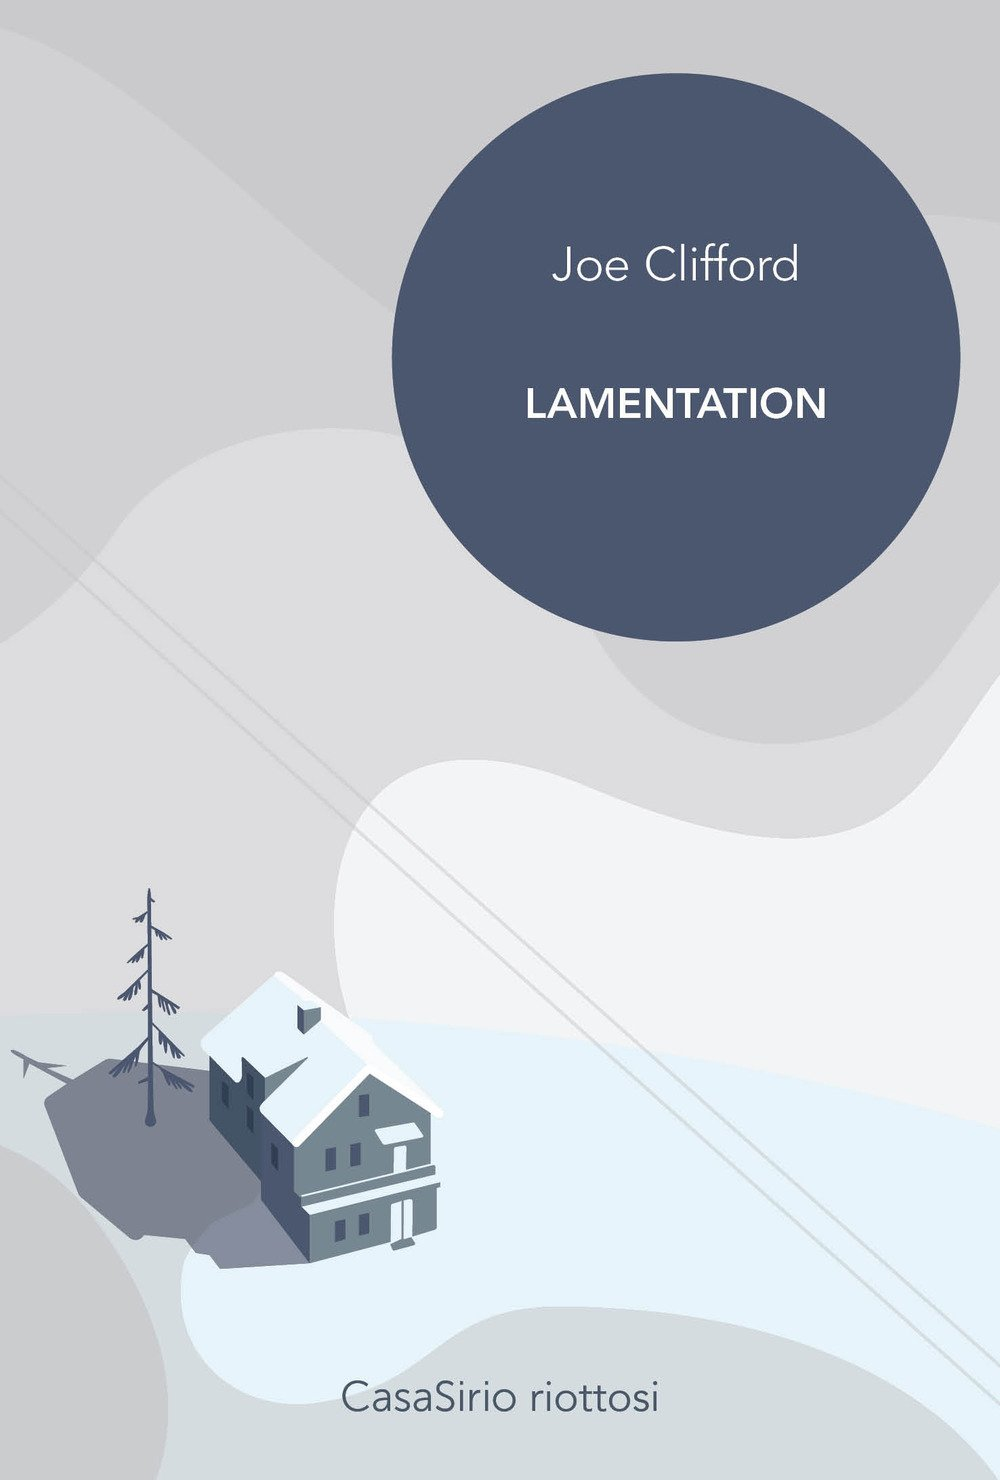 Joe Clifford – Lamentation